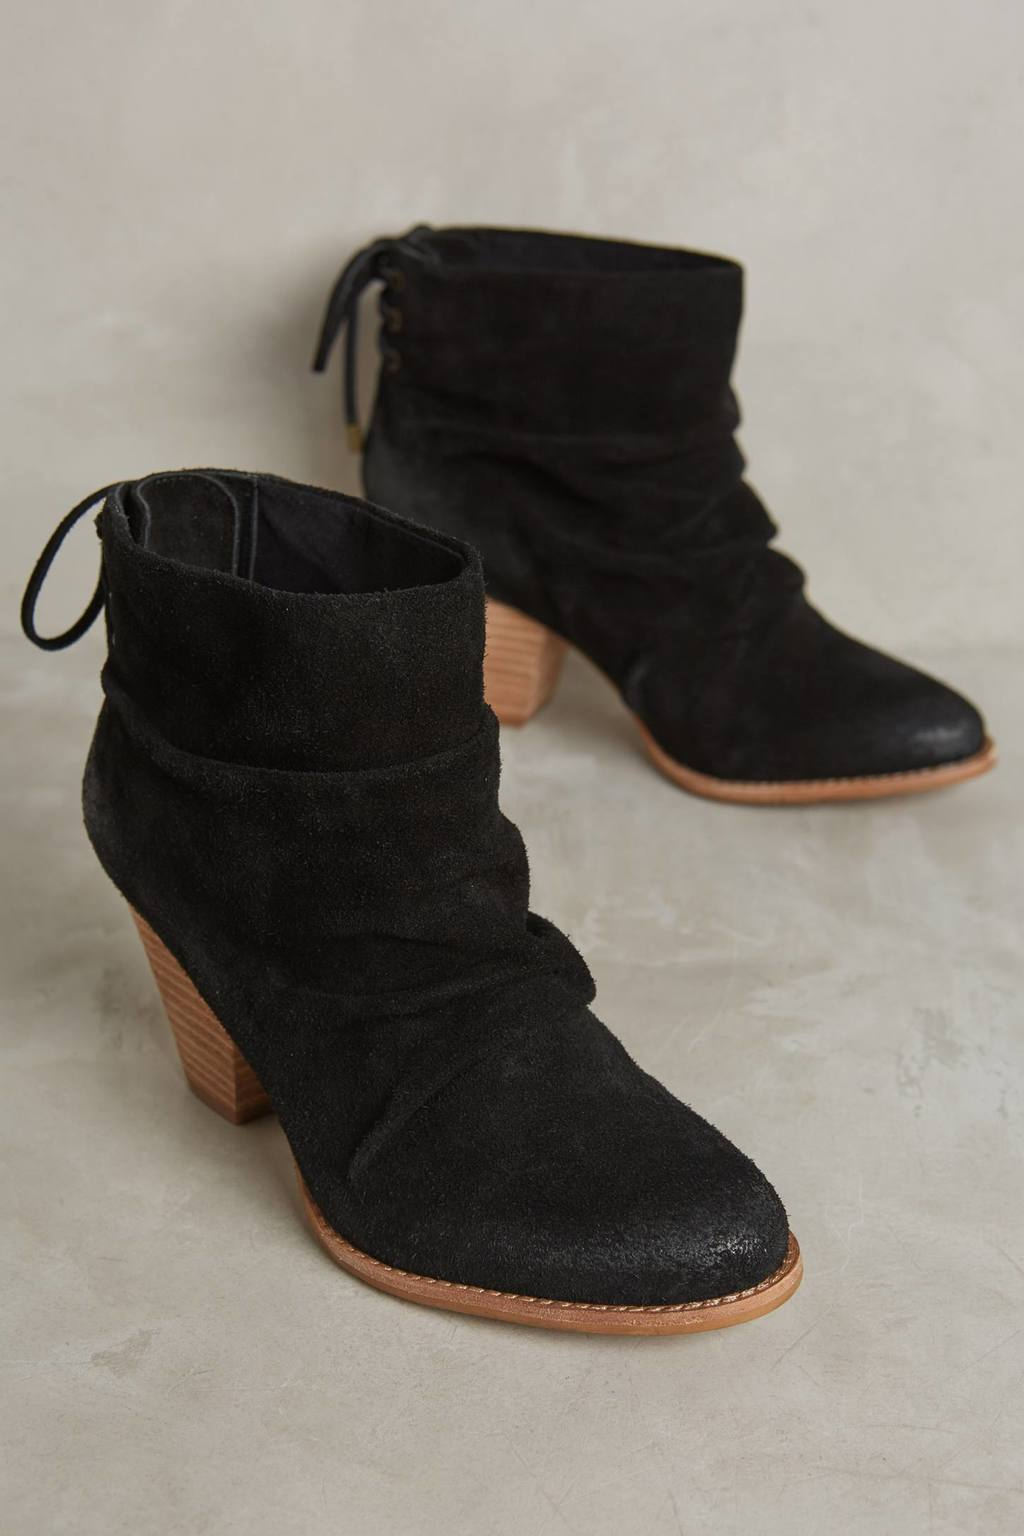 Rae Ruched Suede Boots - predominant colour: black; occasions: casual, creative work; material: suede; heel height: high; heel: block; toe: round toe; boot length: ankle boot; style: standard; finish: plain; pattern: plain; season: a/w 2016; wardrobe: highlight